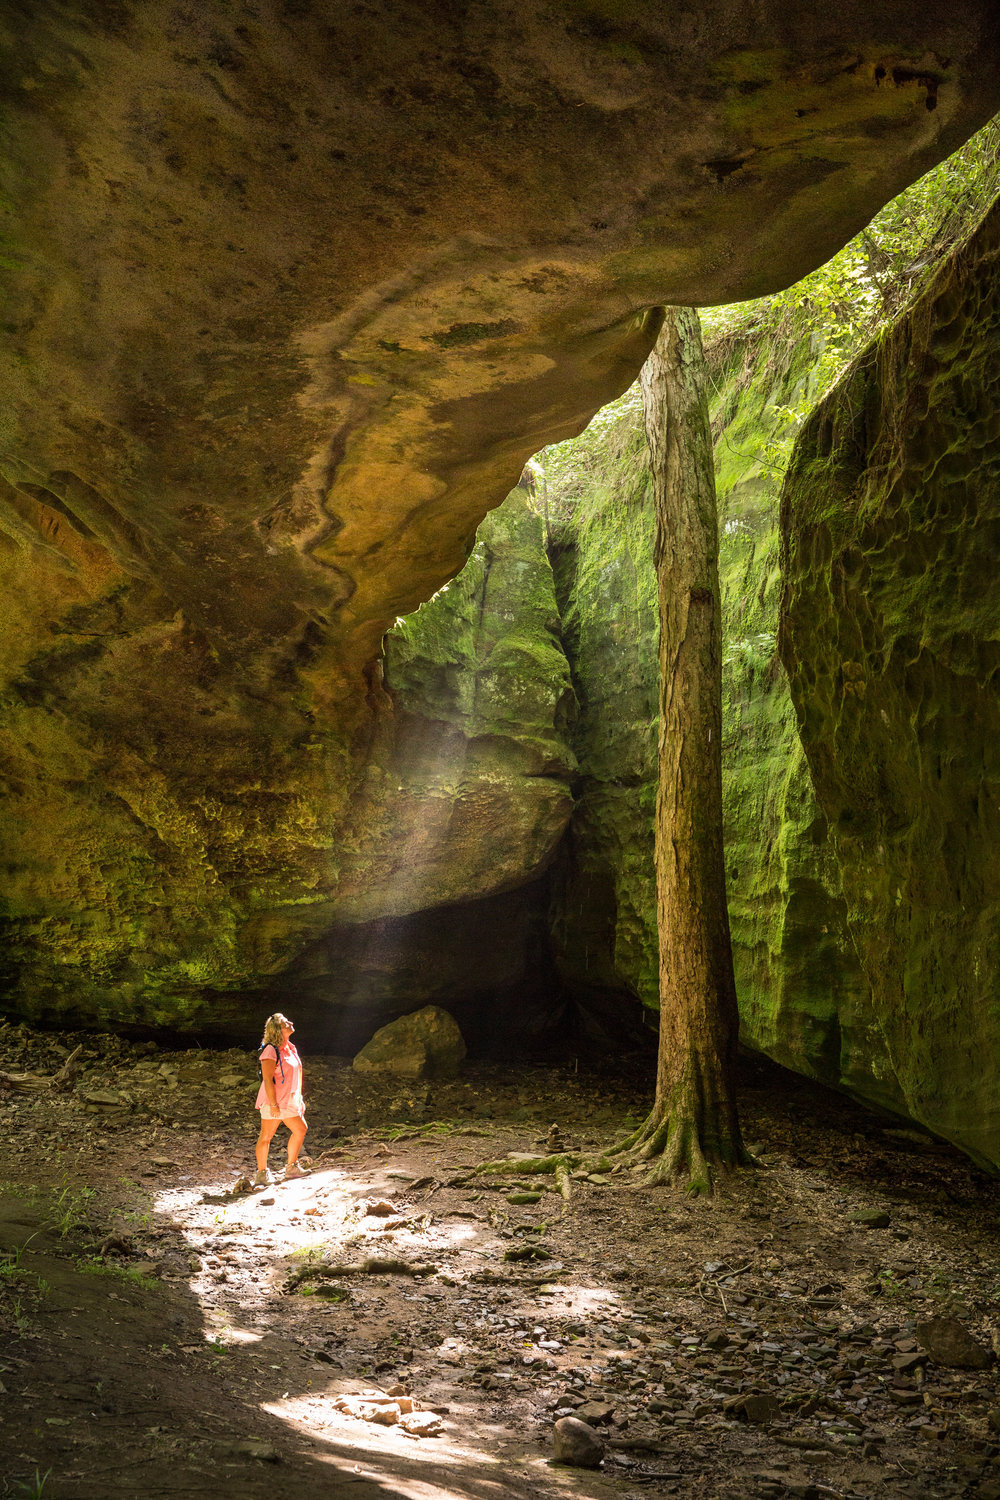 A hiker explores Mantle Rock Nature Preserve, during an editorial shoot for the Kentucky Nature Conservancy.